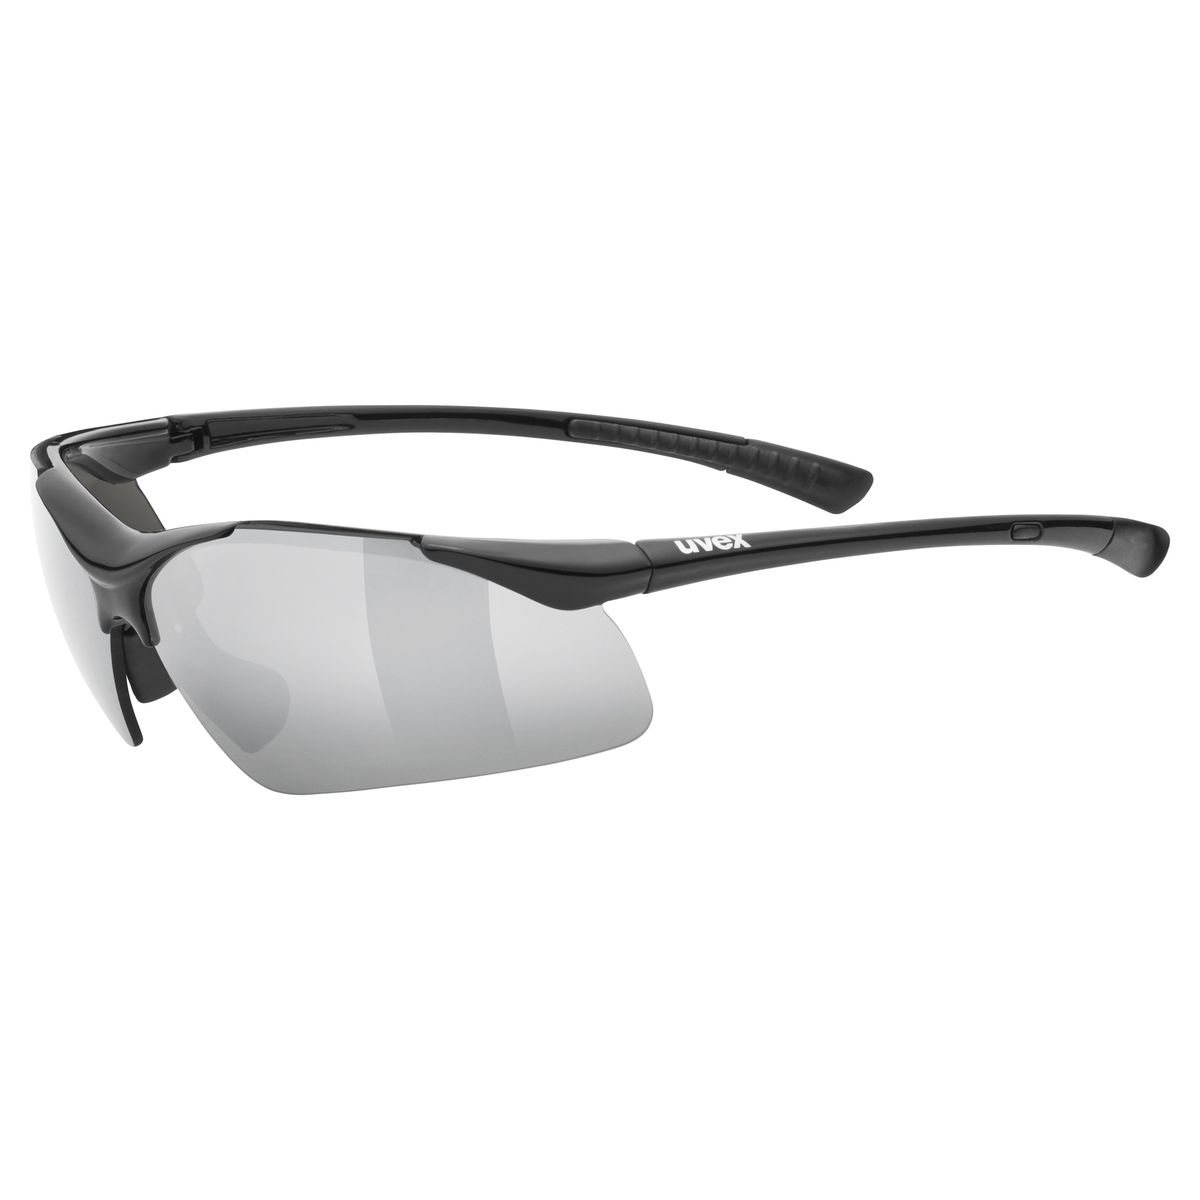 SPORTSTYLE 223 sports glasses